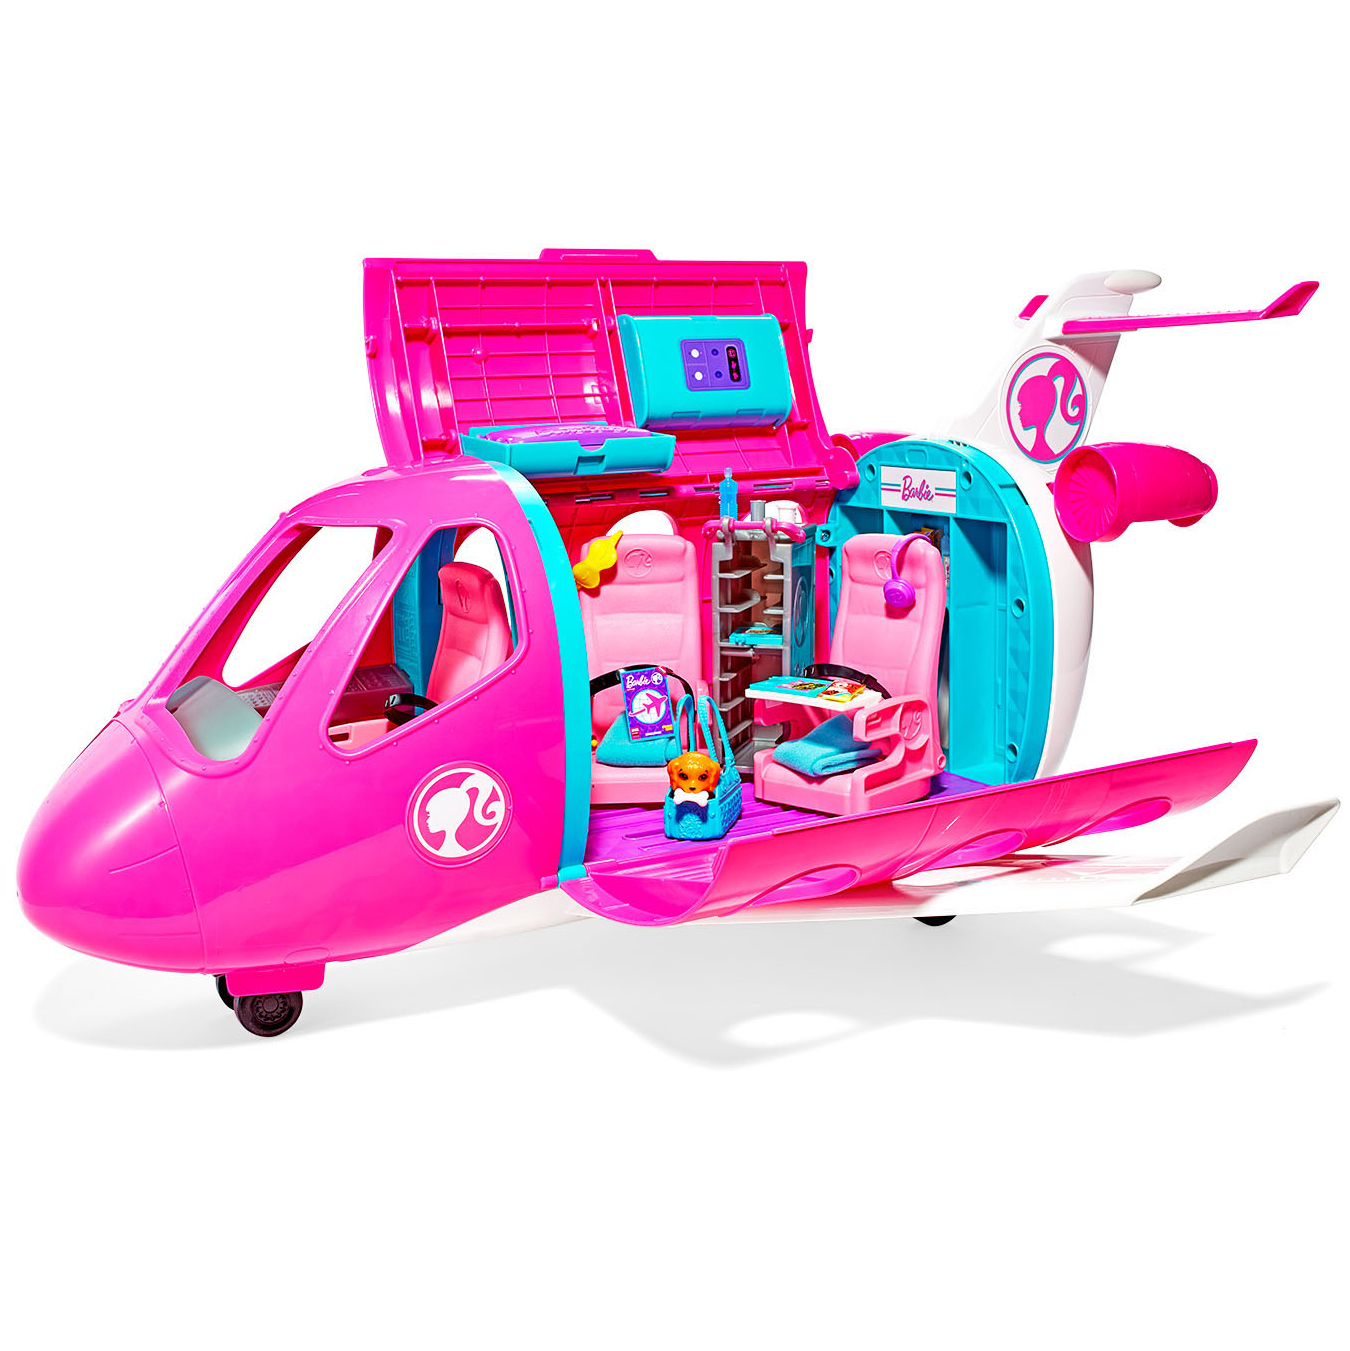 Mattel Barbie Dream Plane